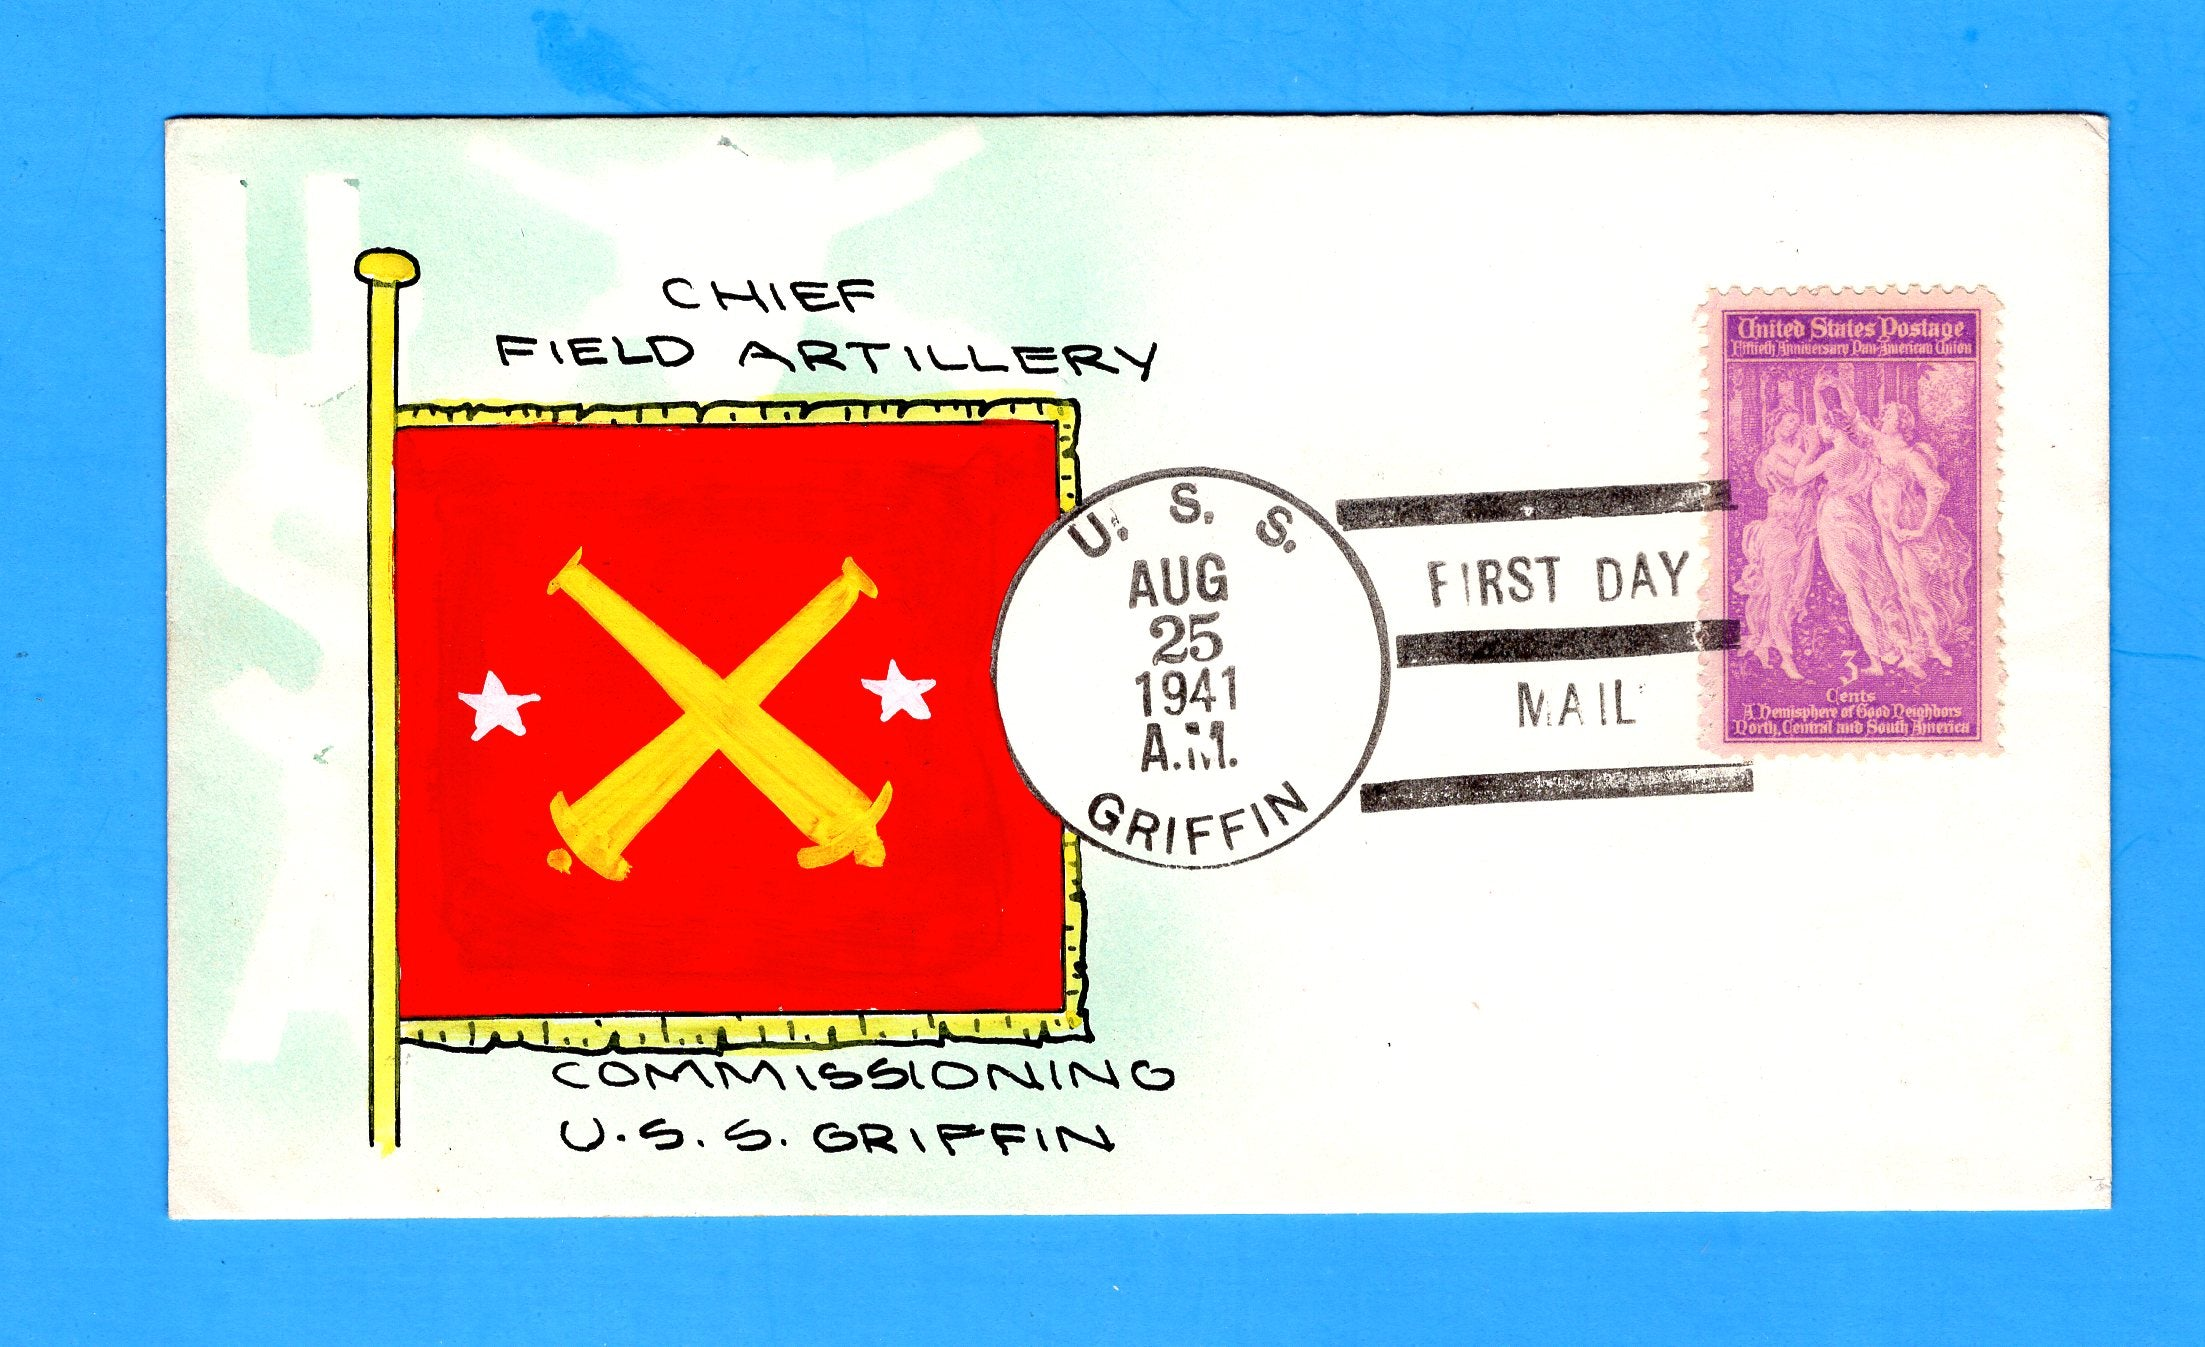 USS Griffin AS-13 First Day Postal Service August 25, 1941 - Mae Weigand Hand Painted Cachet